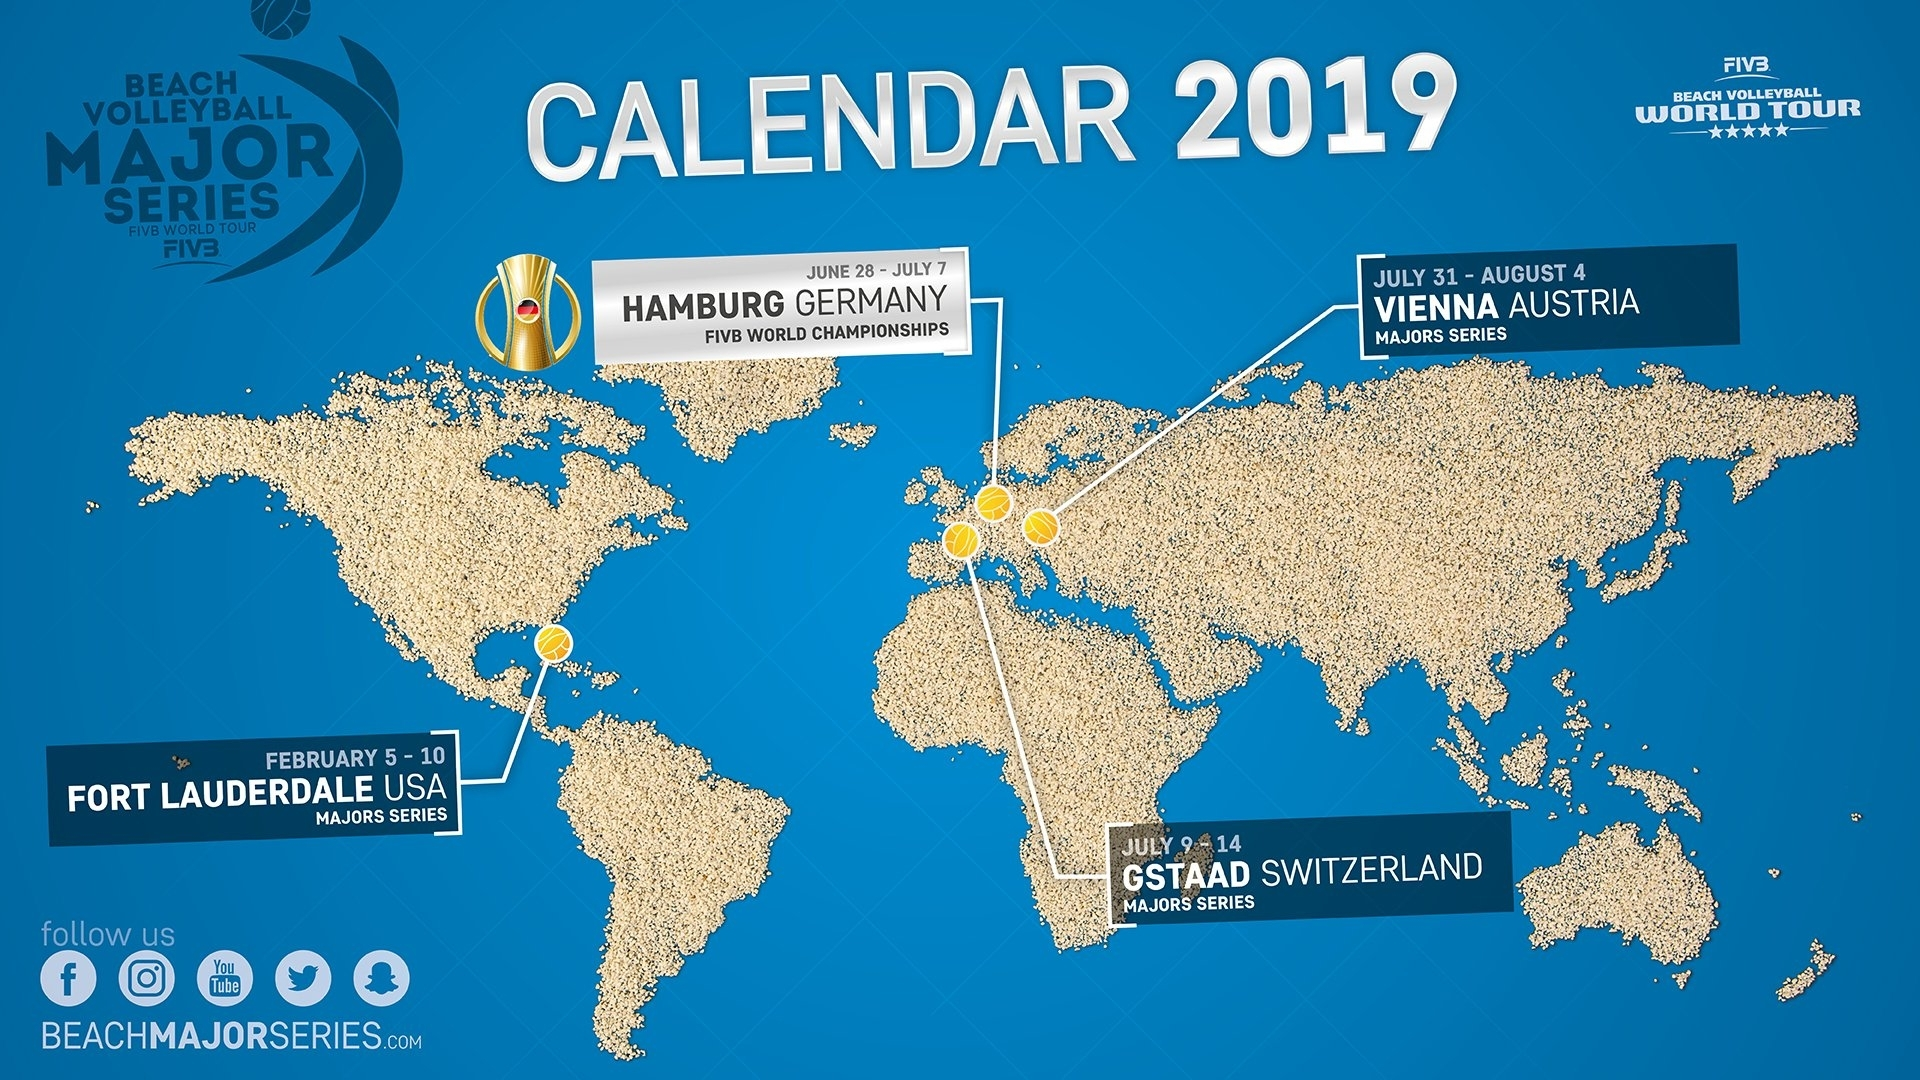 Calendario Contest Hf 2020.2019 Beach Volleyball Major Series Calendar Revealed